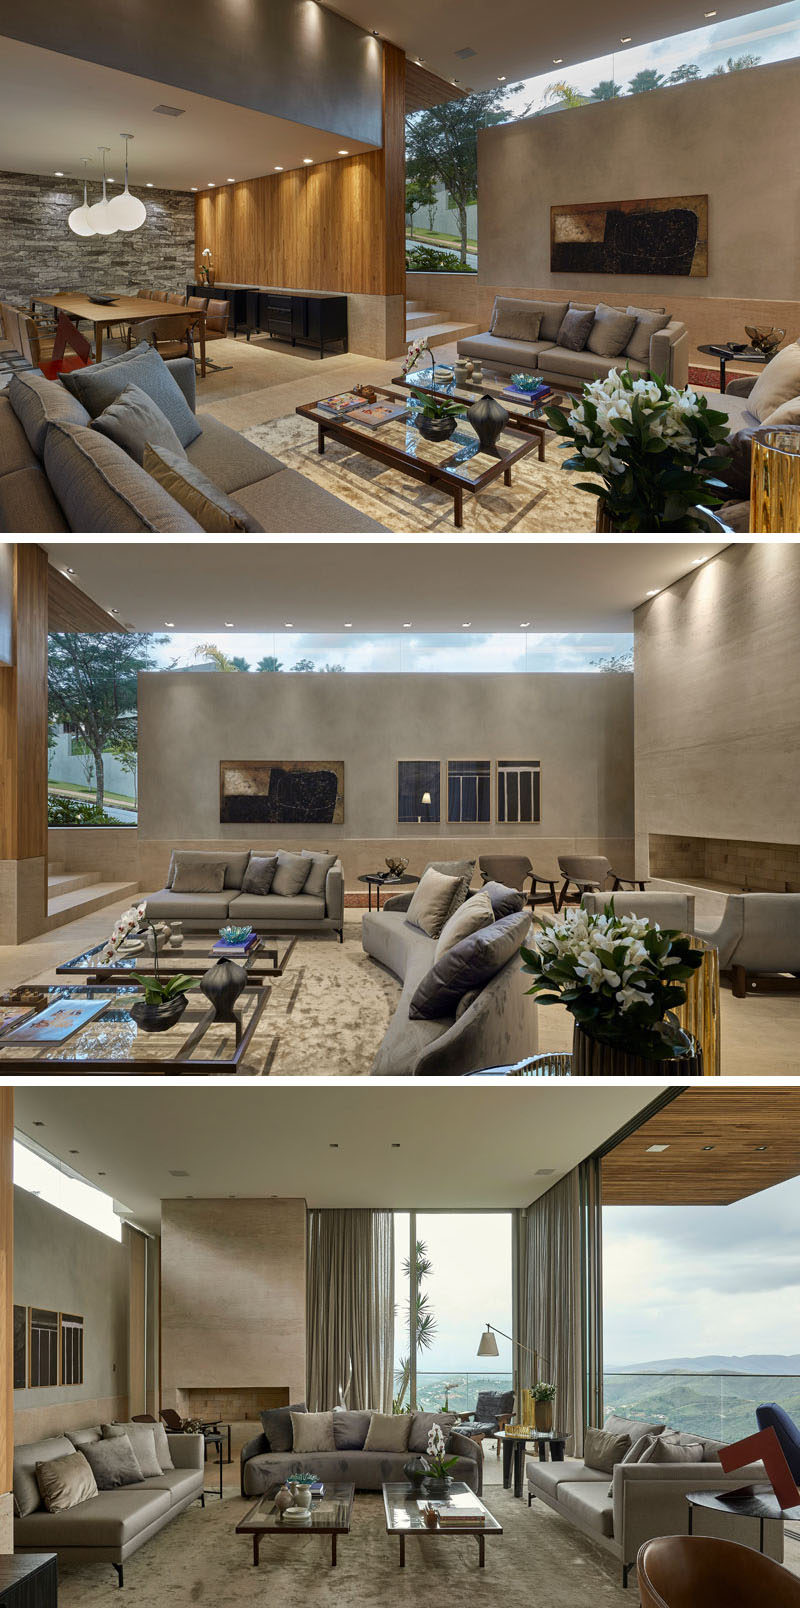 The hallway by the front door of this modern house steps down into the living room and dining room. High ceilings create a spacious and open feeling in the living room. #LivingRoom #Windows